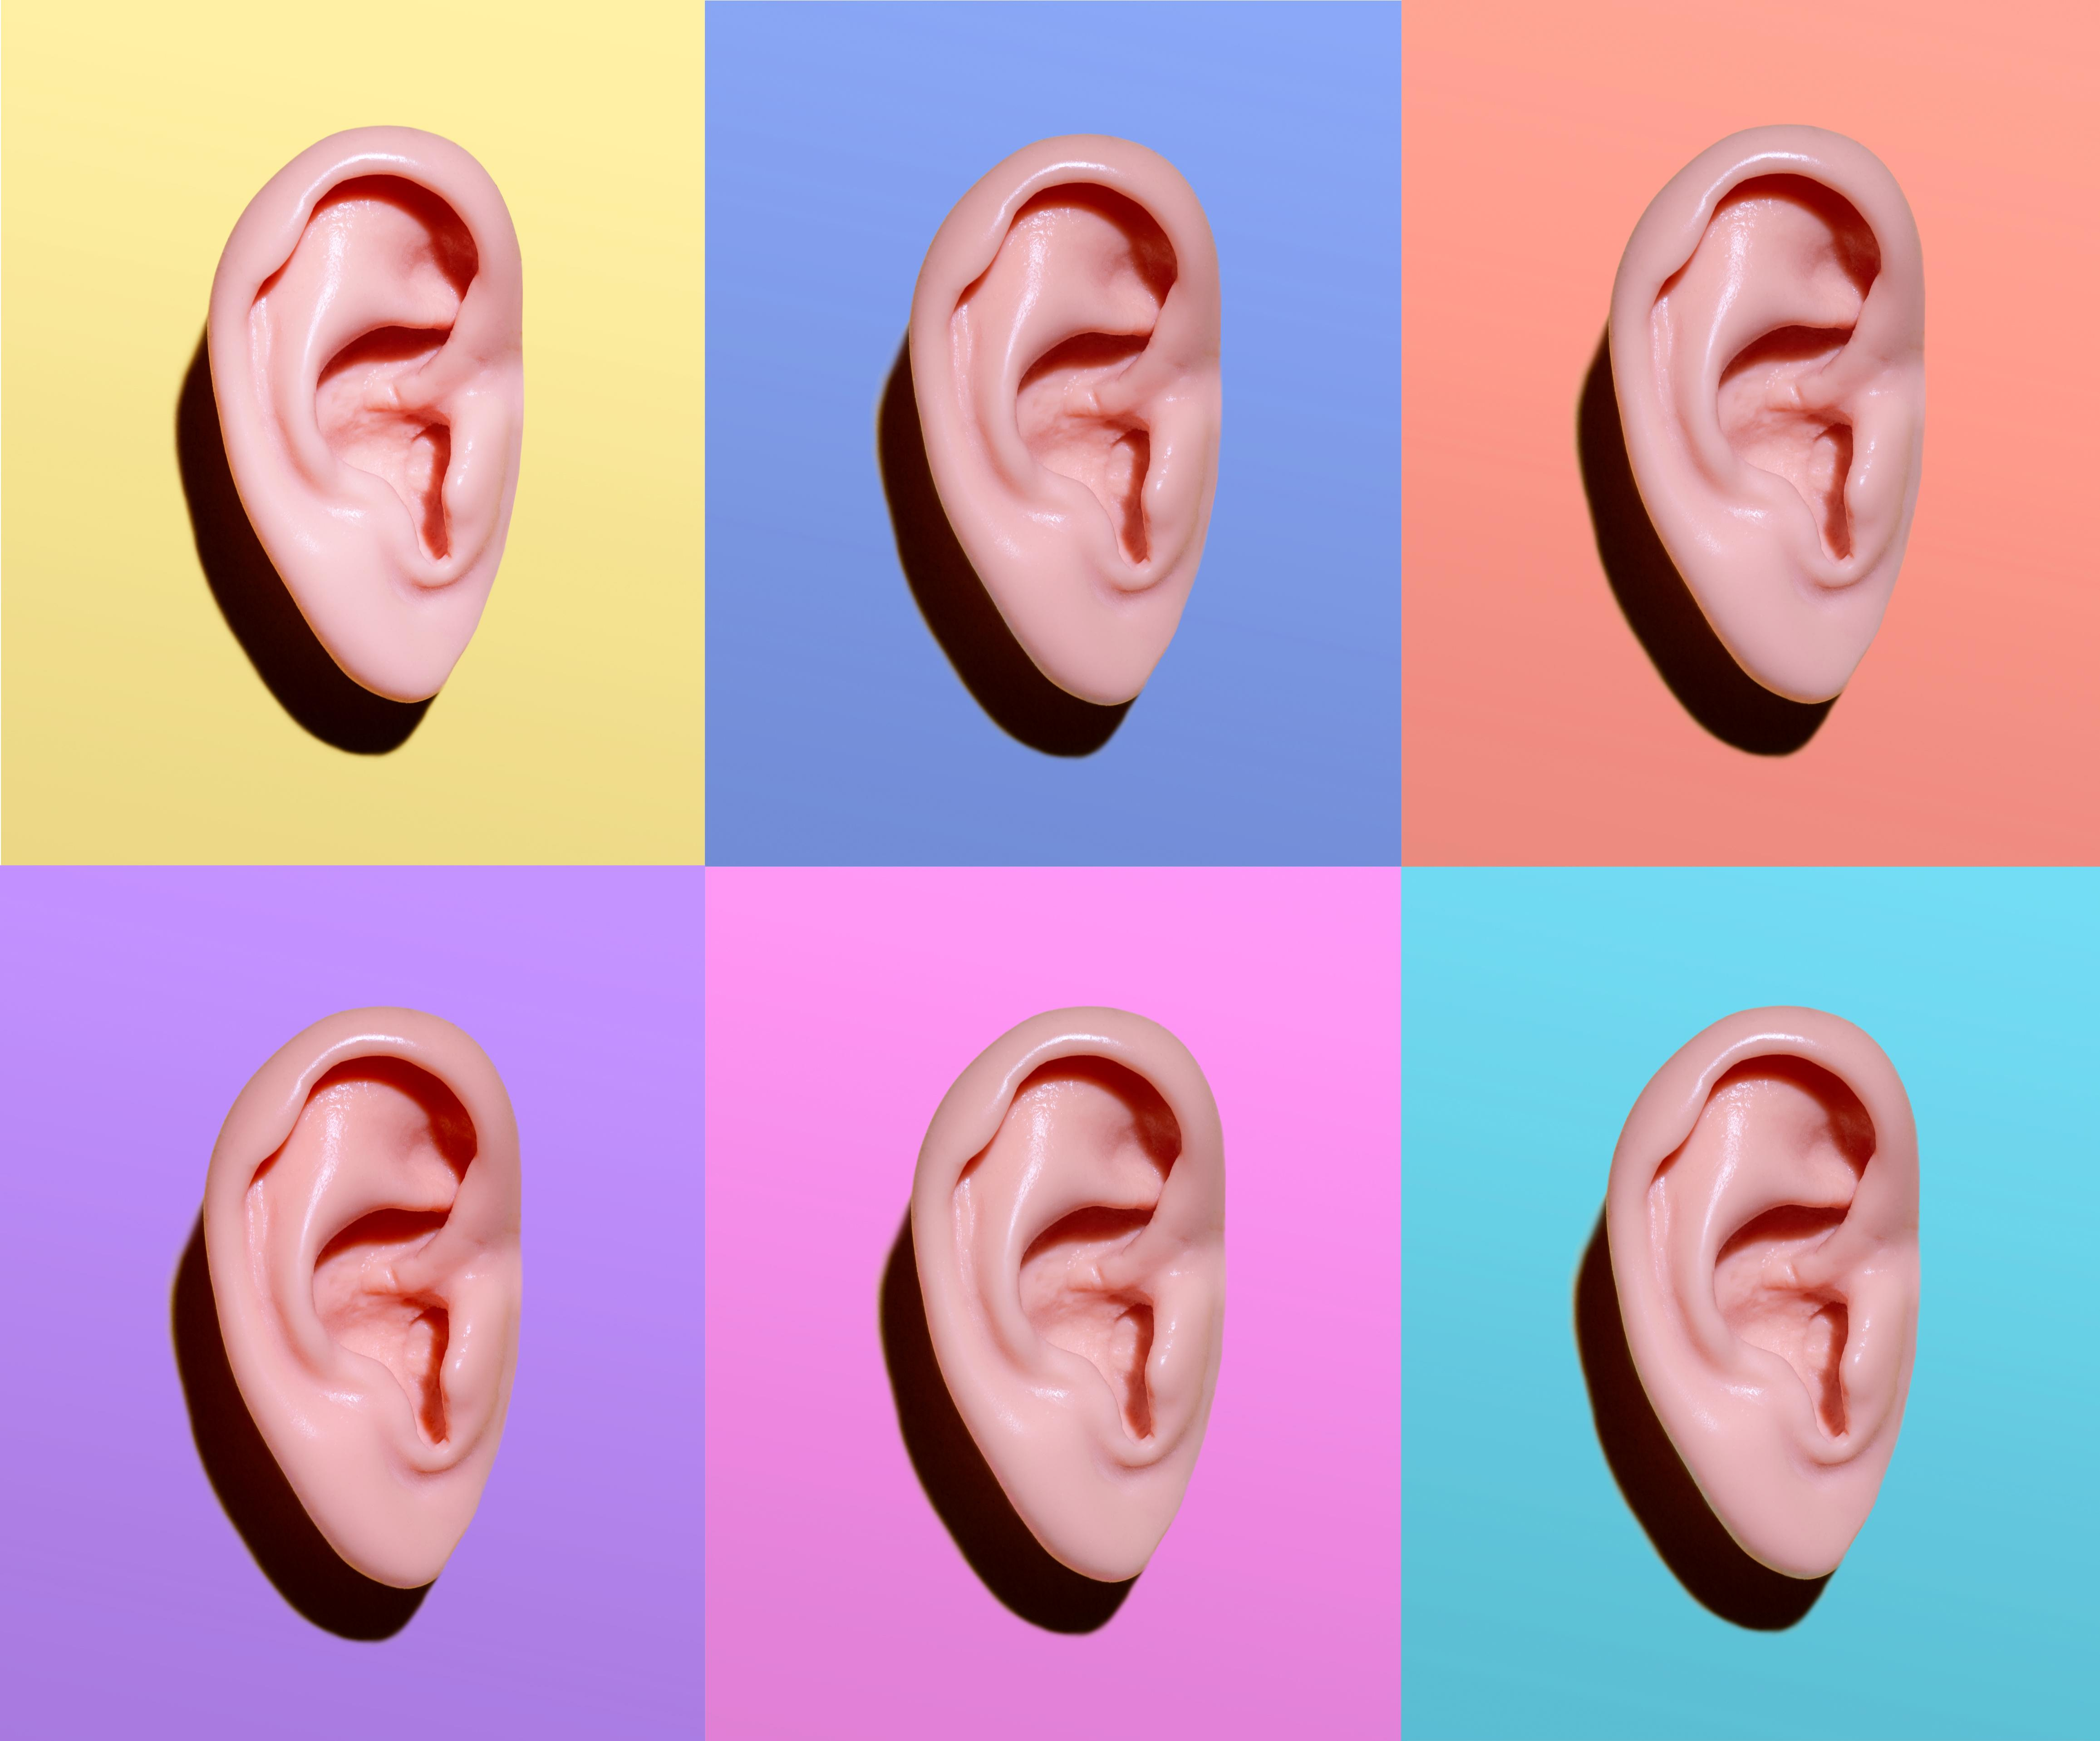 Only some people can make this sound with their ear - are you one of them?